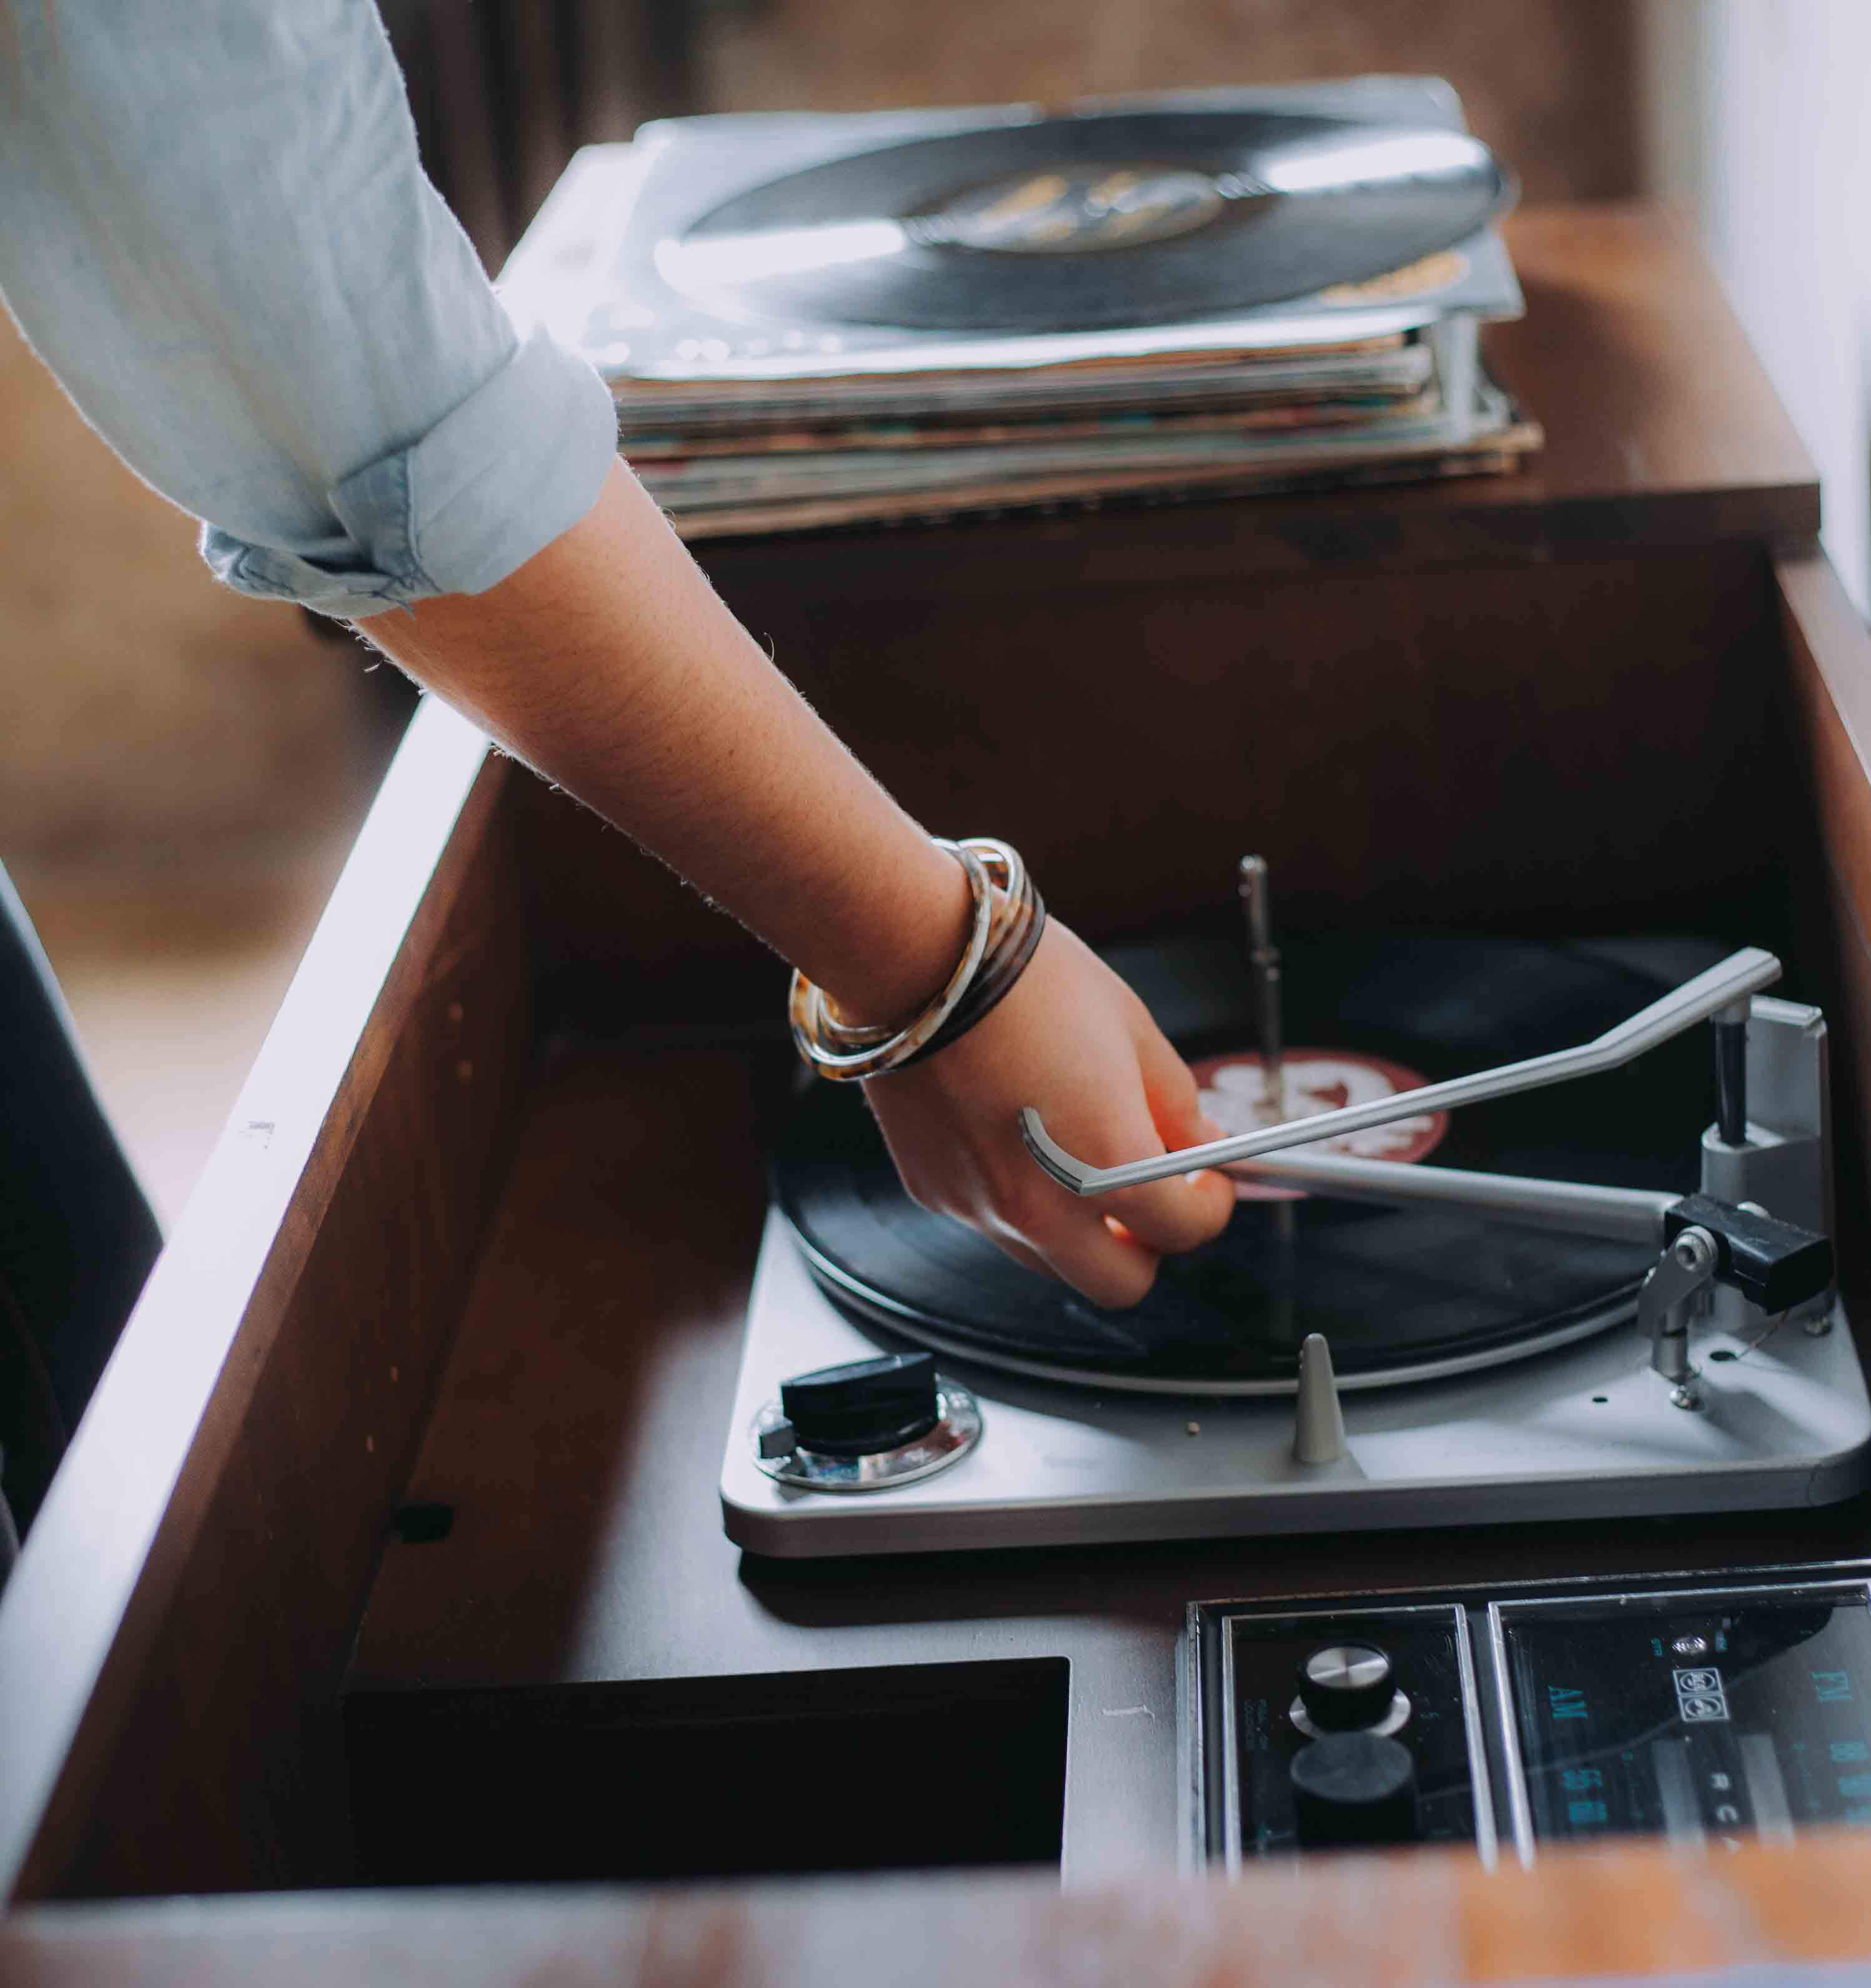 How To Make Sure Your Record Player Is Compatible With Your Records